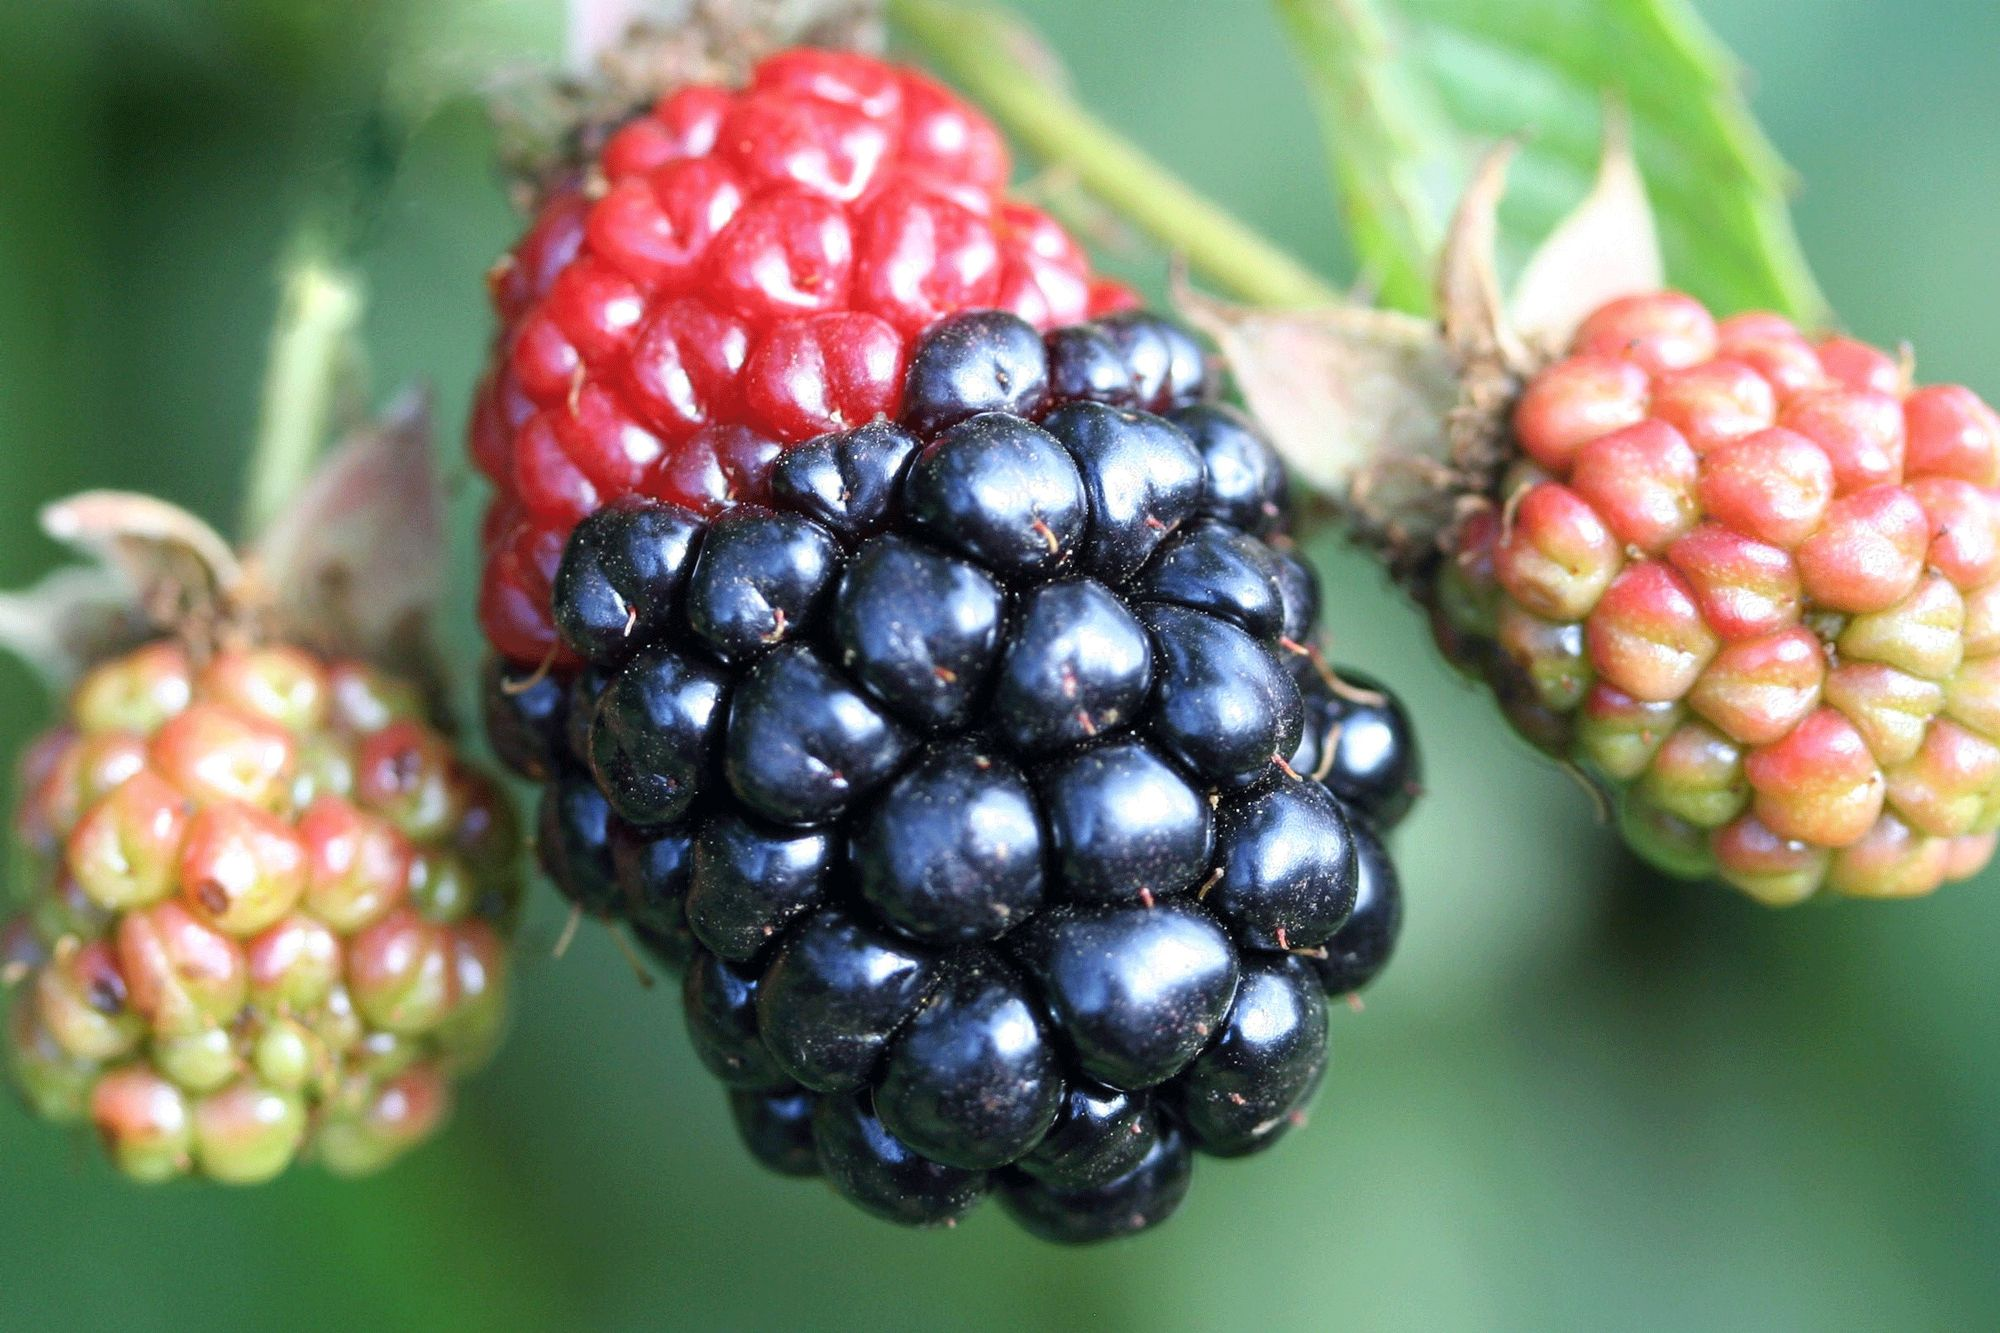 Redberry mite blackberry